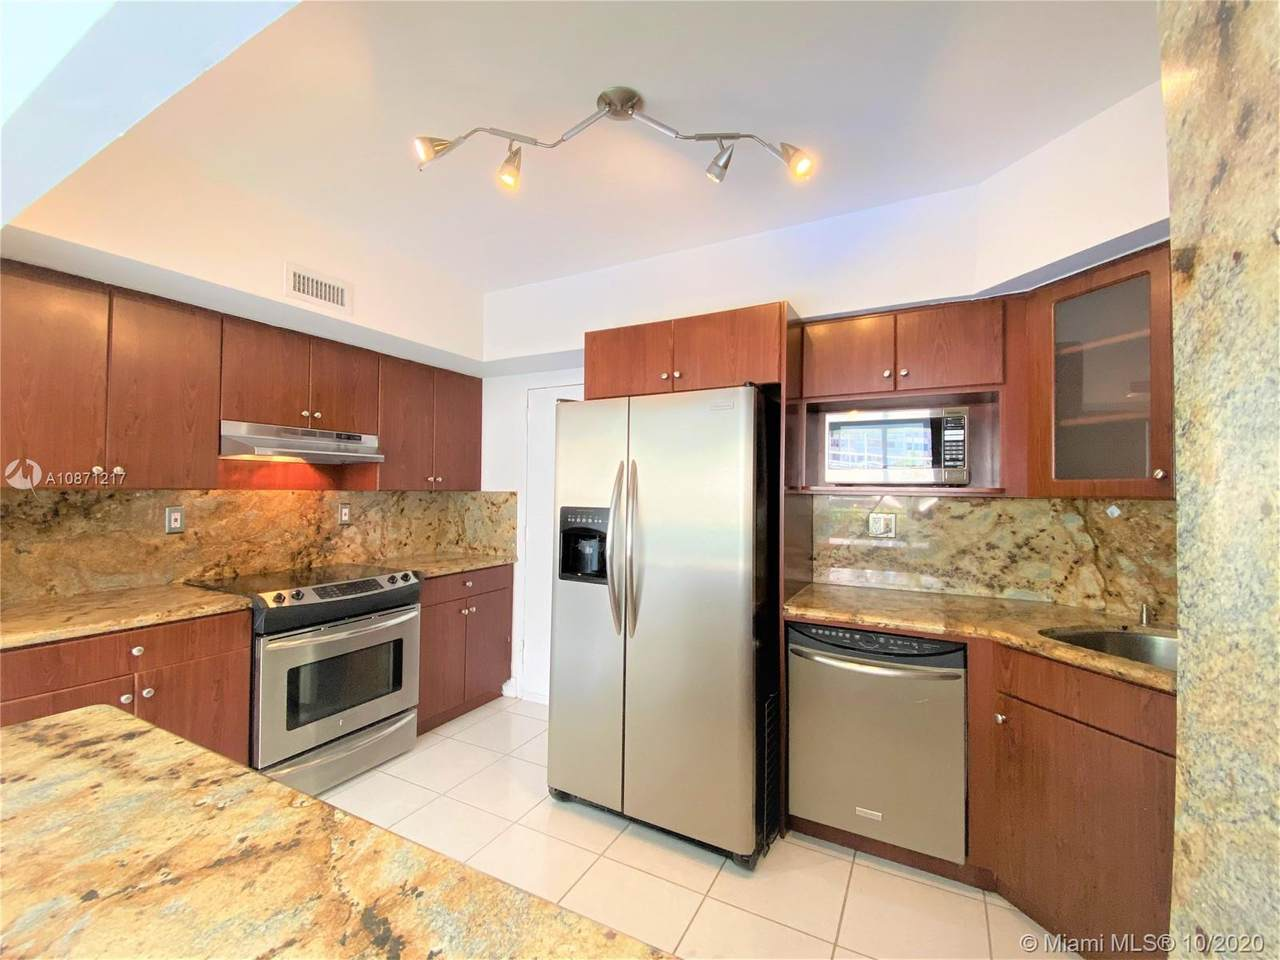 1408 Brickell Bay Dr - Photo 1